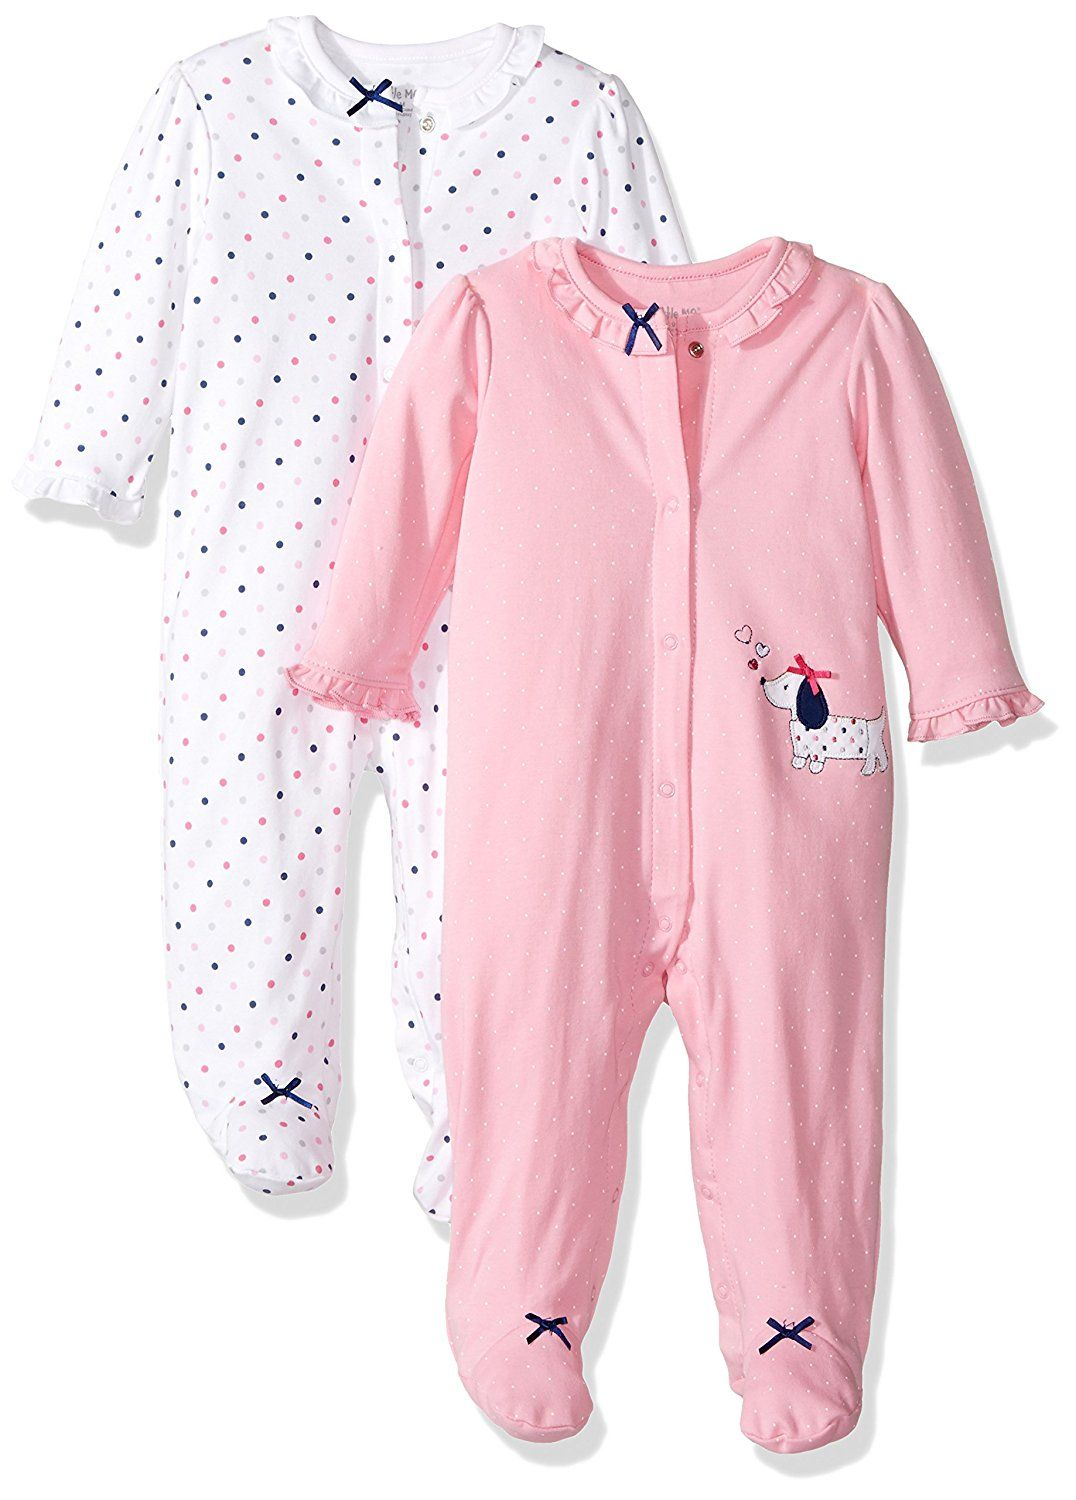 Little Me Baby 6 Pack Footies, White/Multi, Newborn  Baby clothes